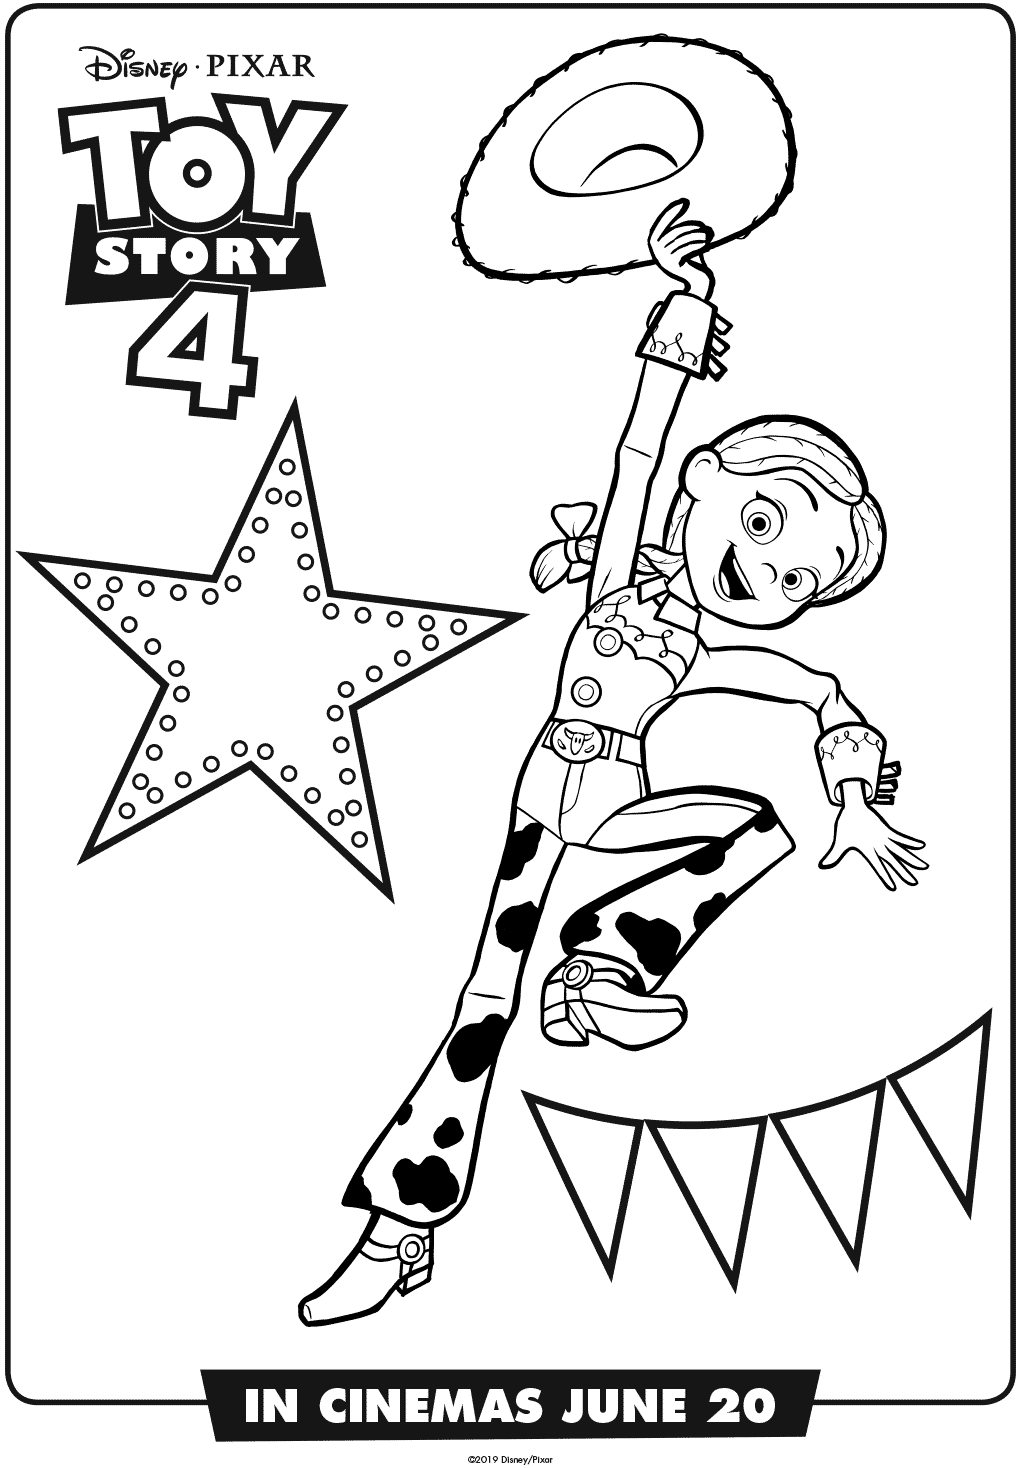 lego toy story 4 coloring pages 18 free printable toy story 4 coloring pages 1nza 4 pages coloring lego story toy